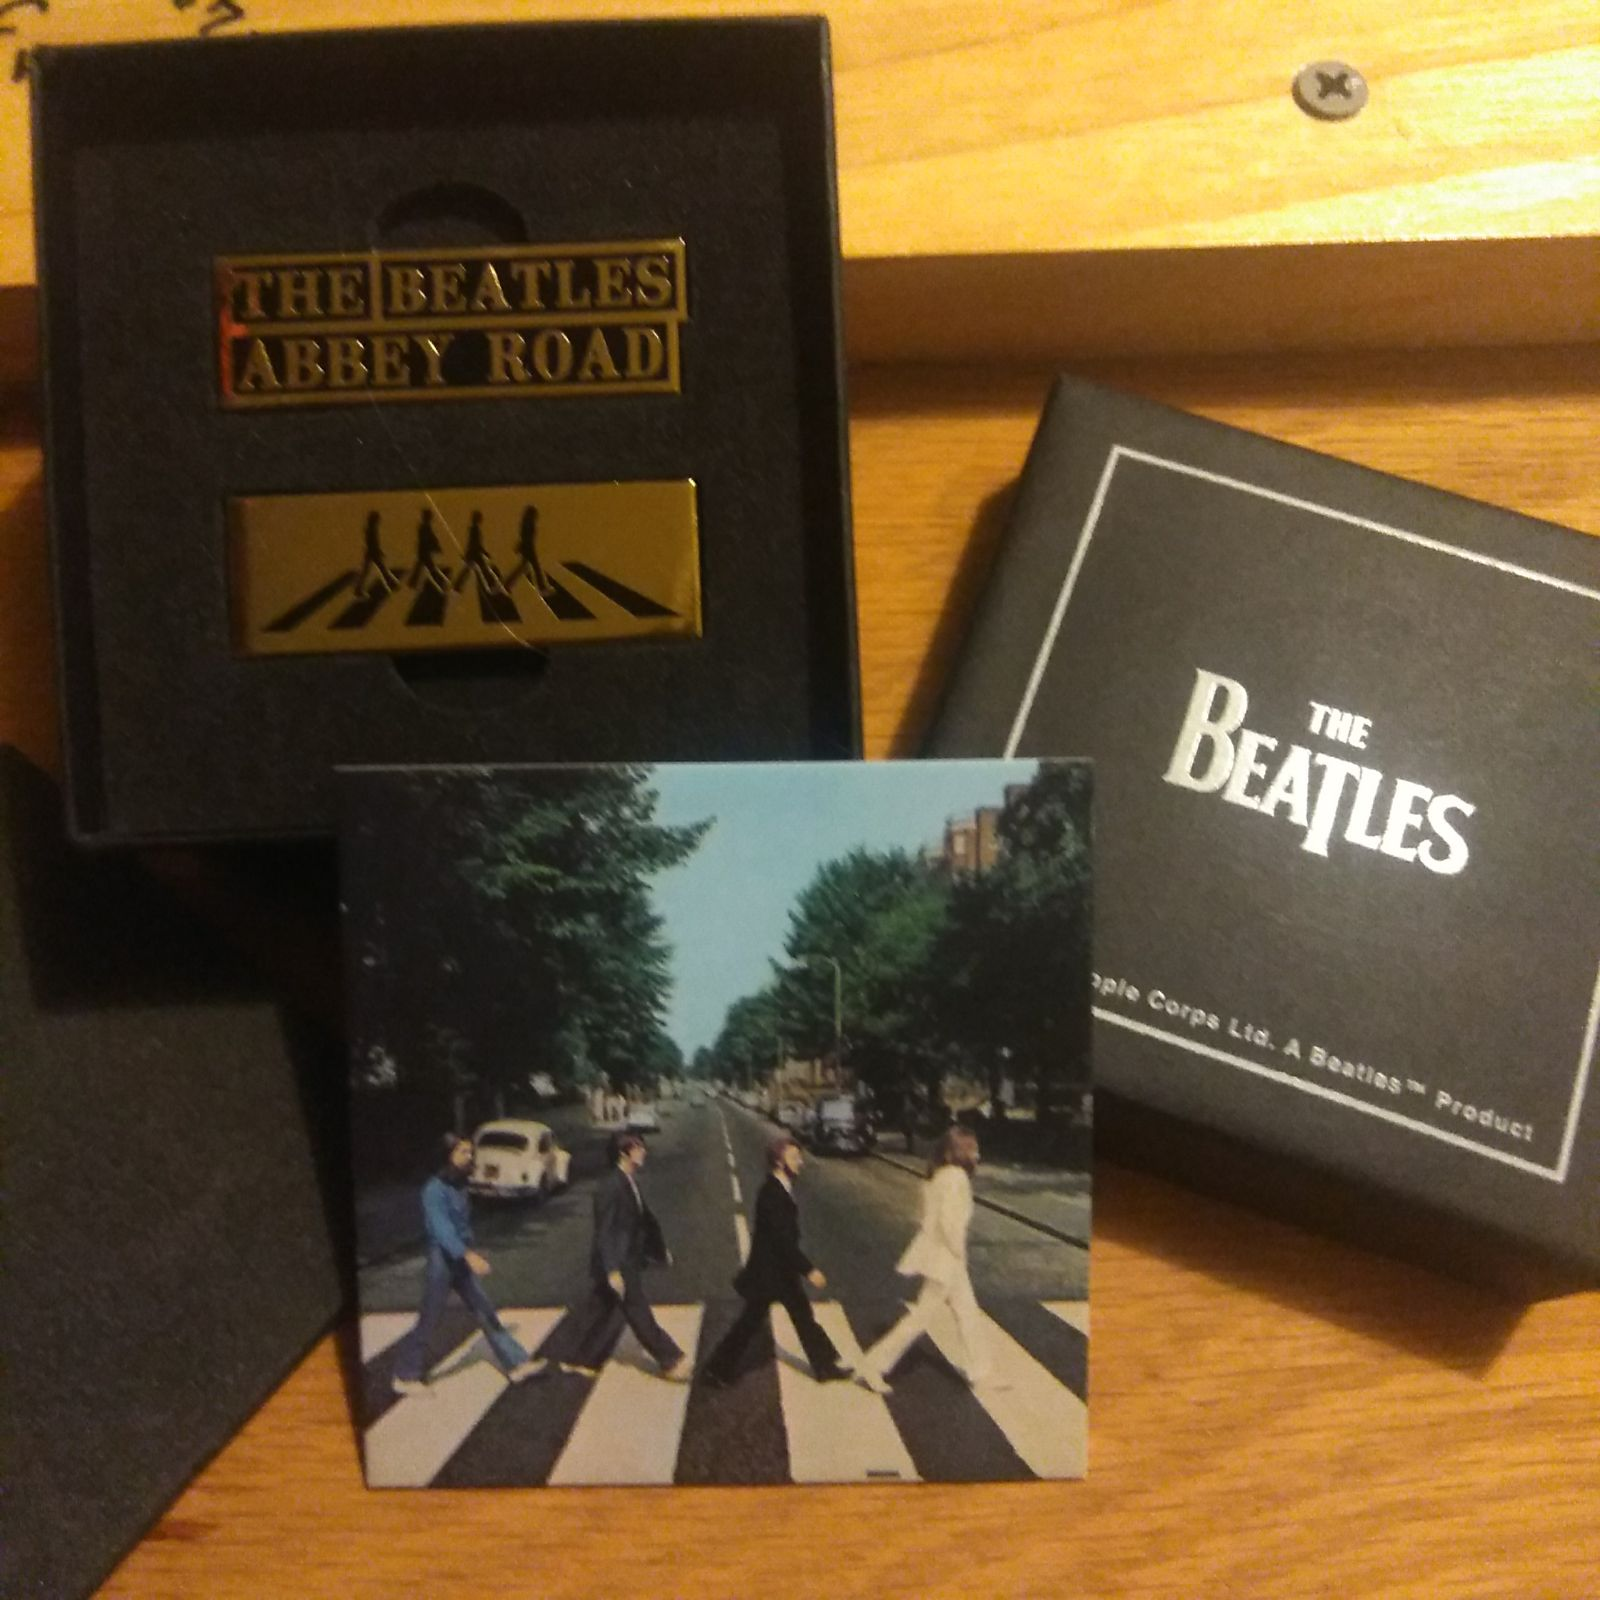 The Beatles Abbey Road Pins